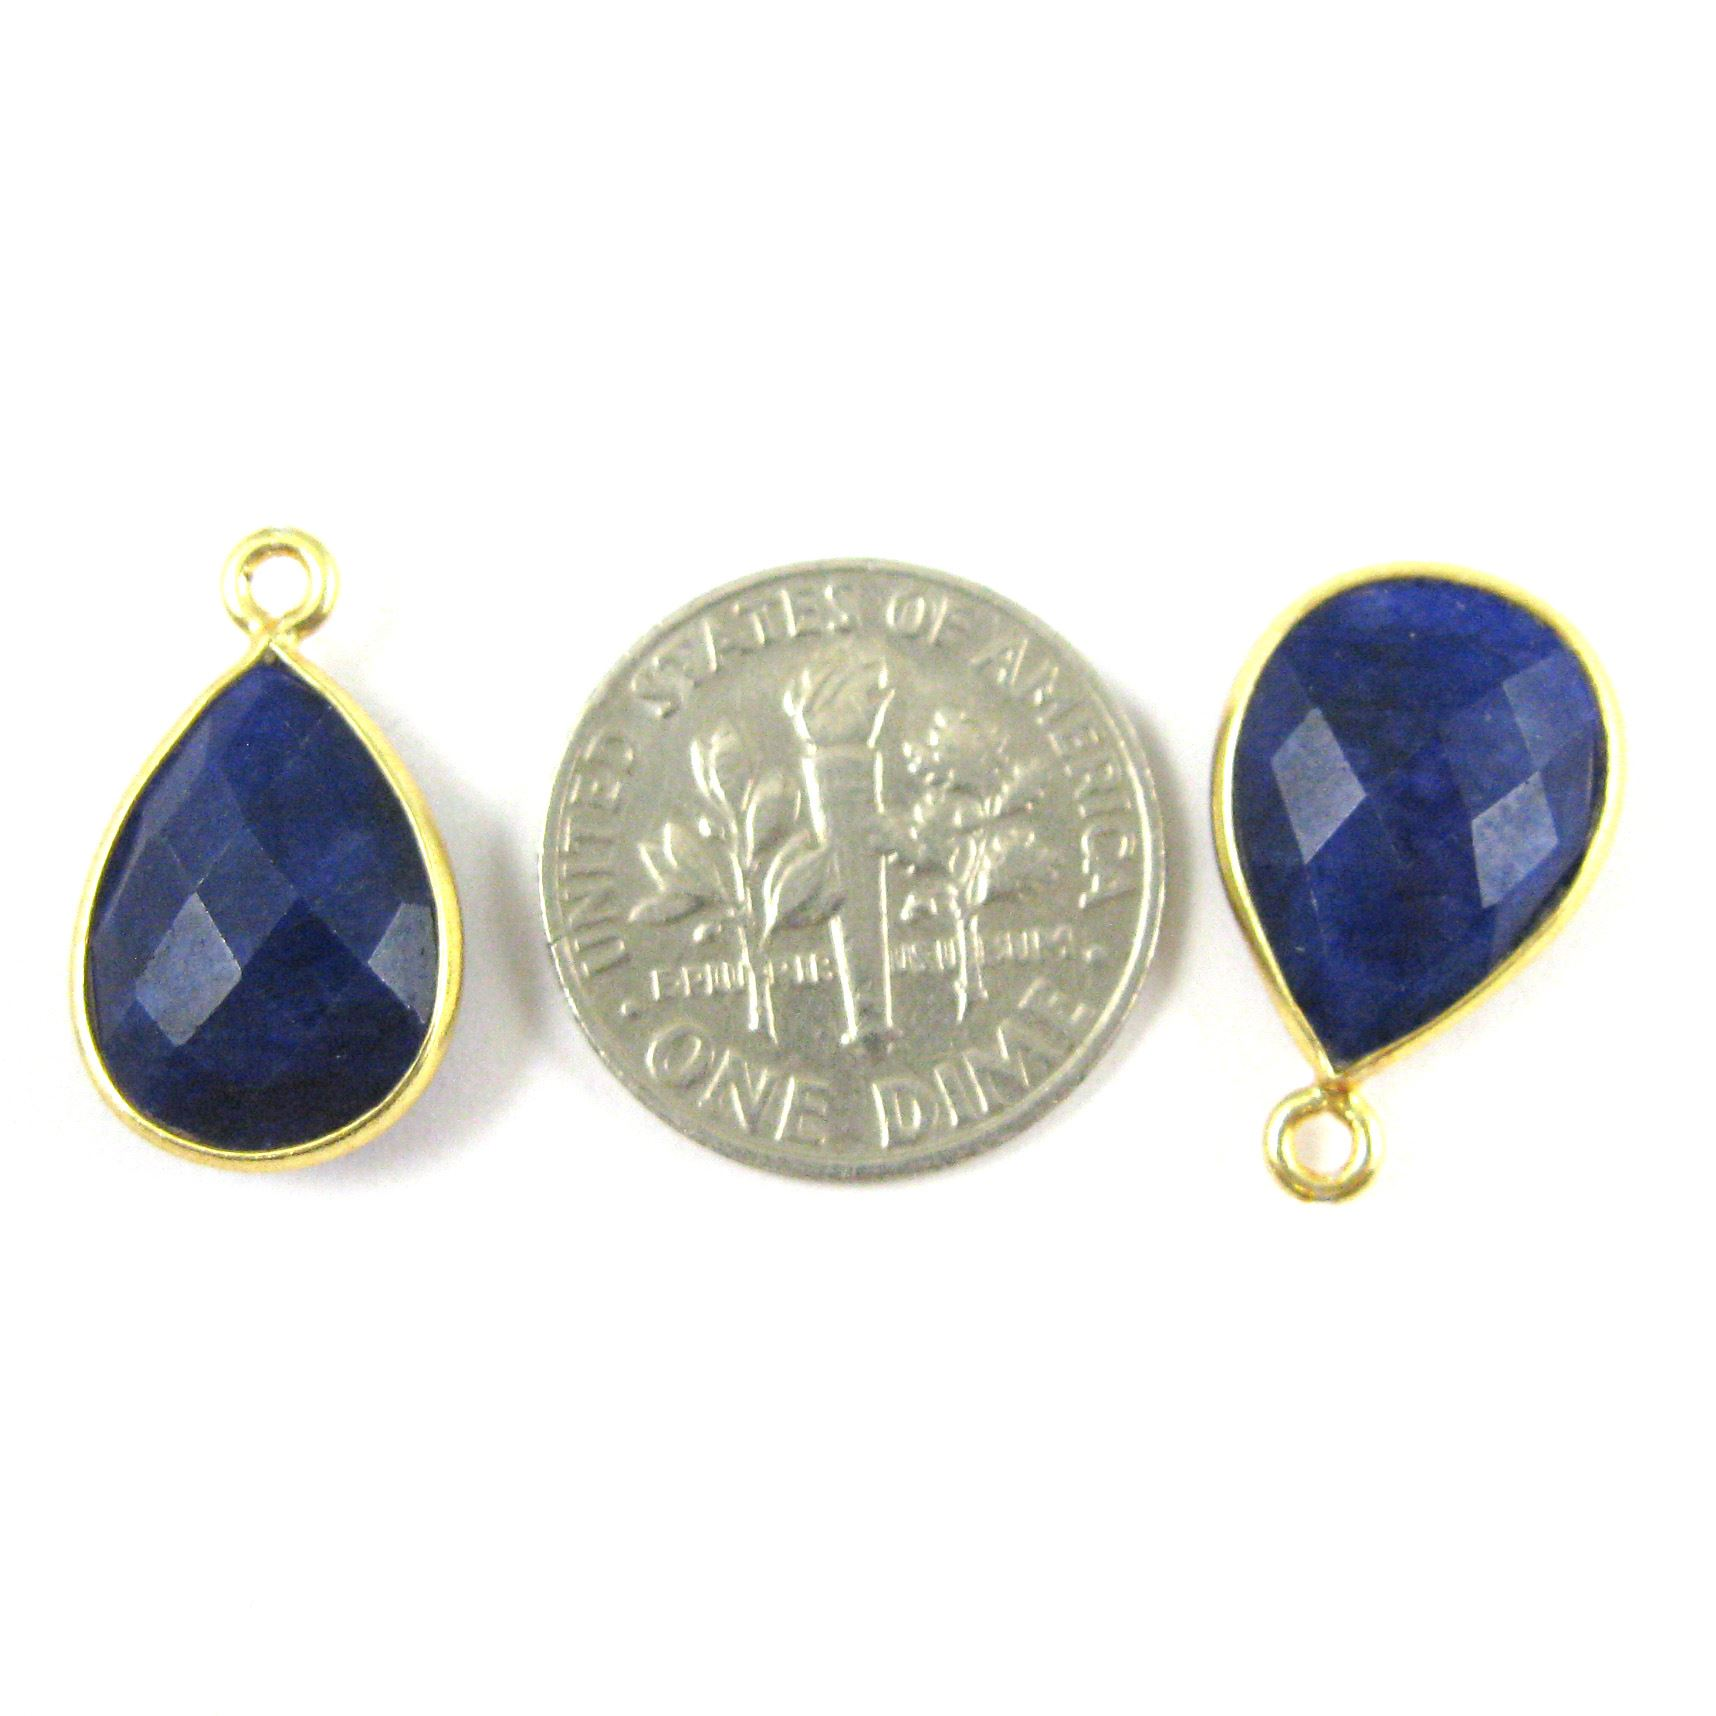 Bezel Gemstone Pendant - 10x14mm Faceted Small Teardop Shape - Blue Sapphire Dyed  (Sold per 2 pieces)